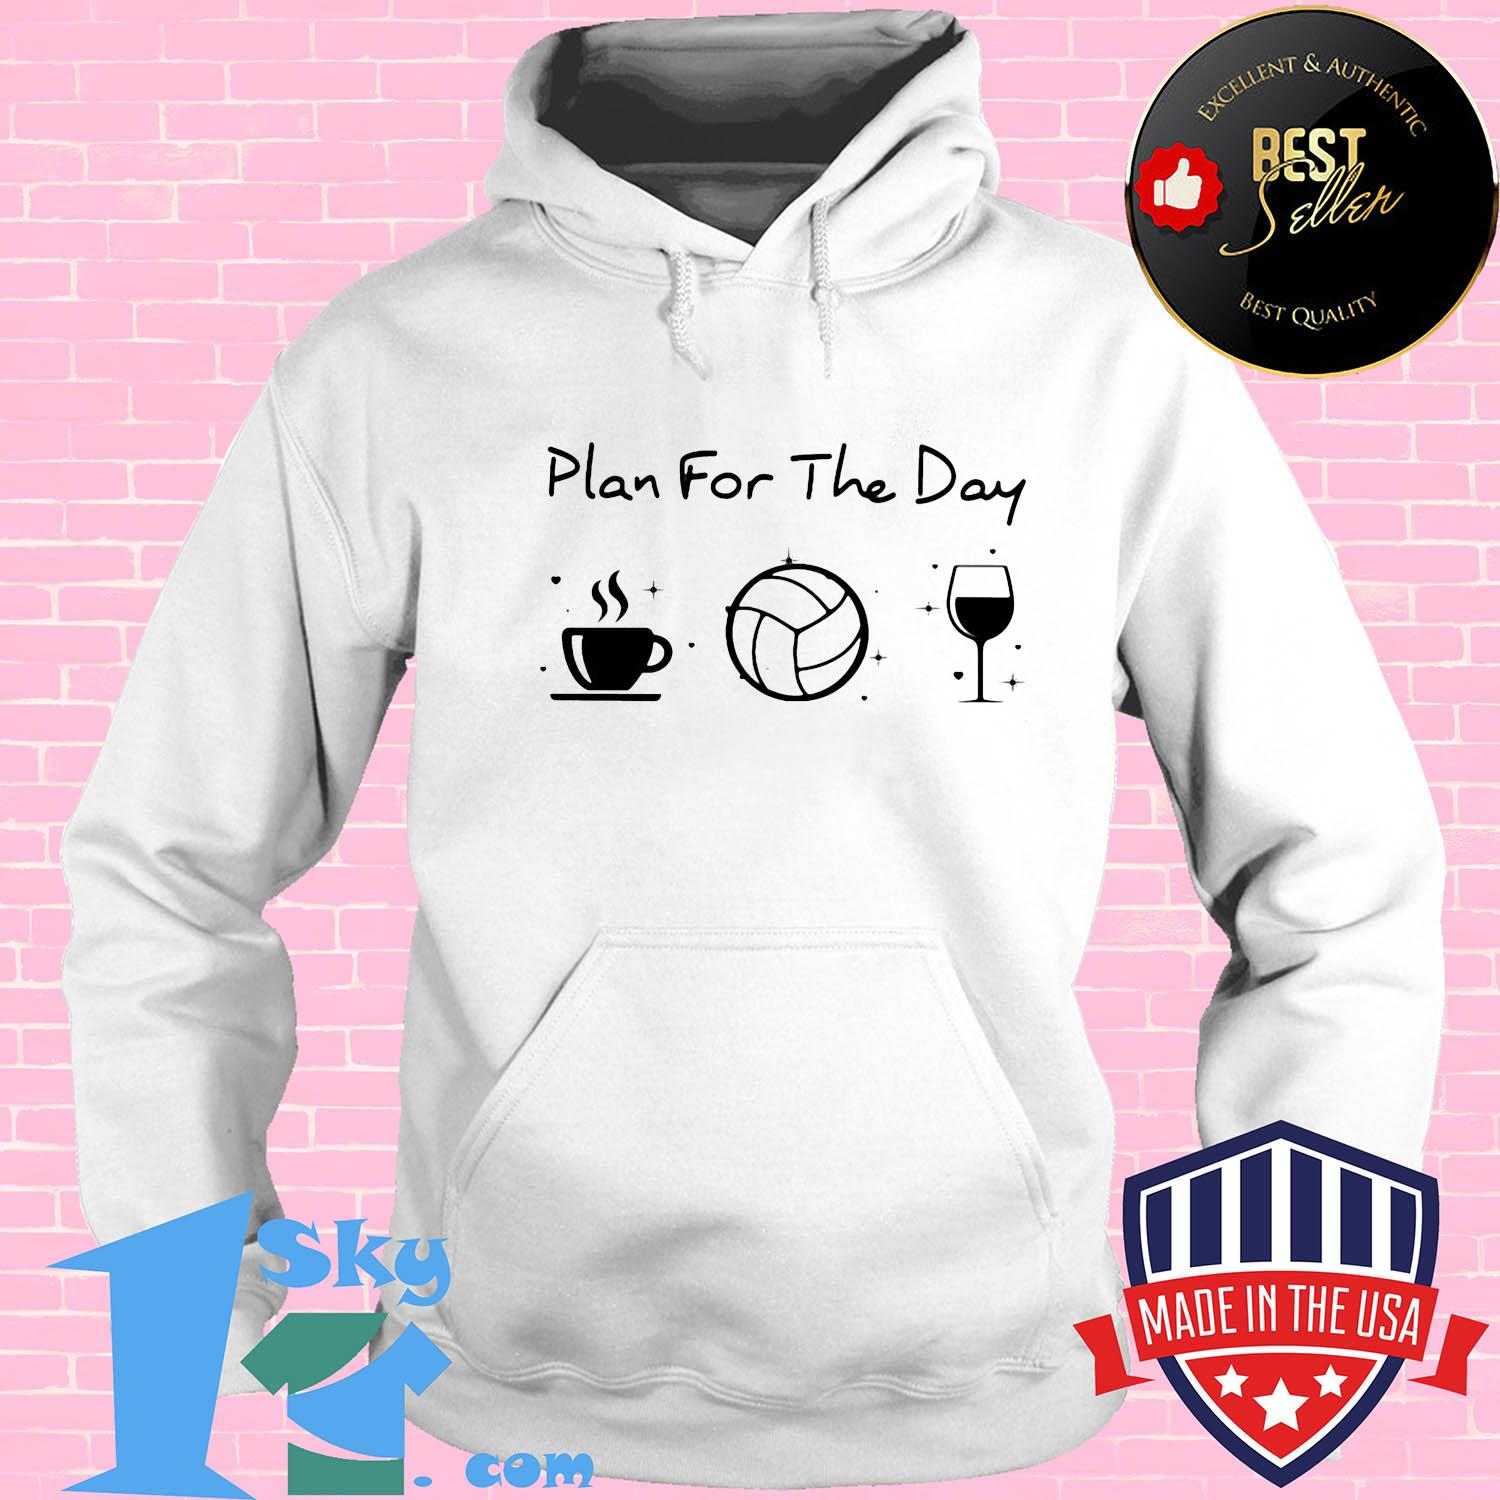 5b8ec95c plan for the day coffee volleyball wine shirt hoodie - Shop trending - We offer all trend shirts - 1SkyTee